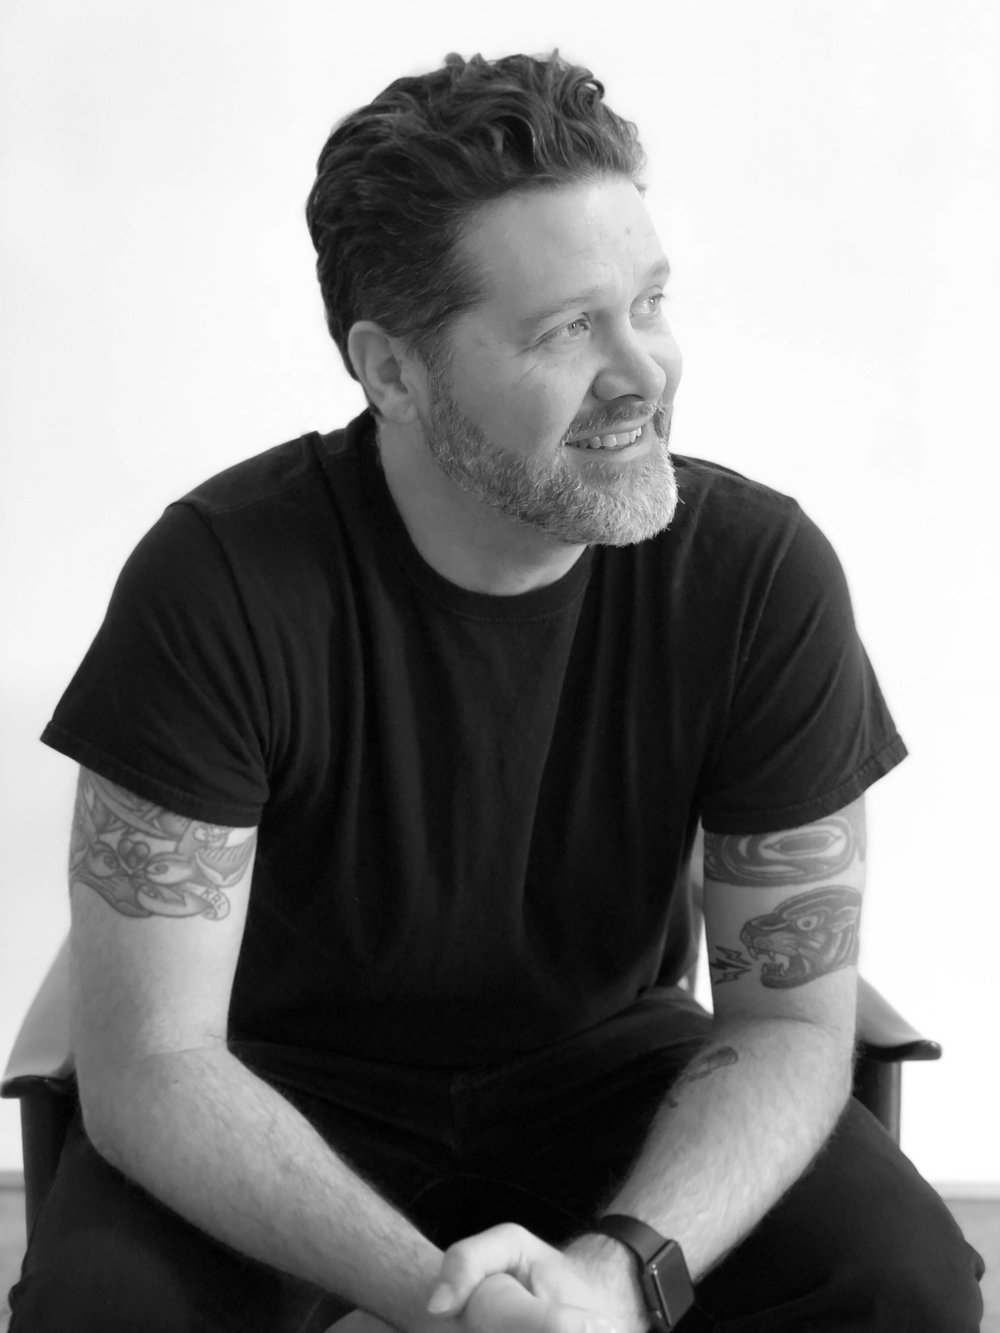 Todd Lancaster, Chief Creative Officer